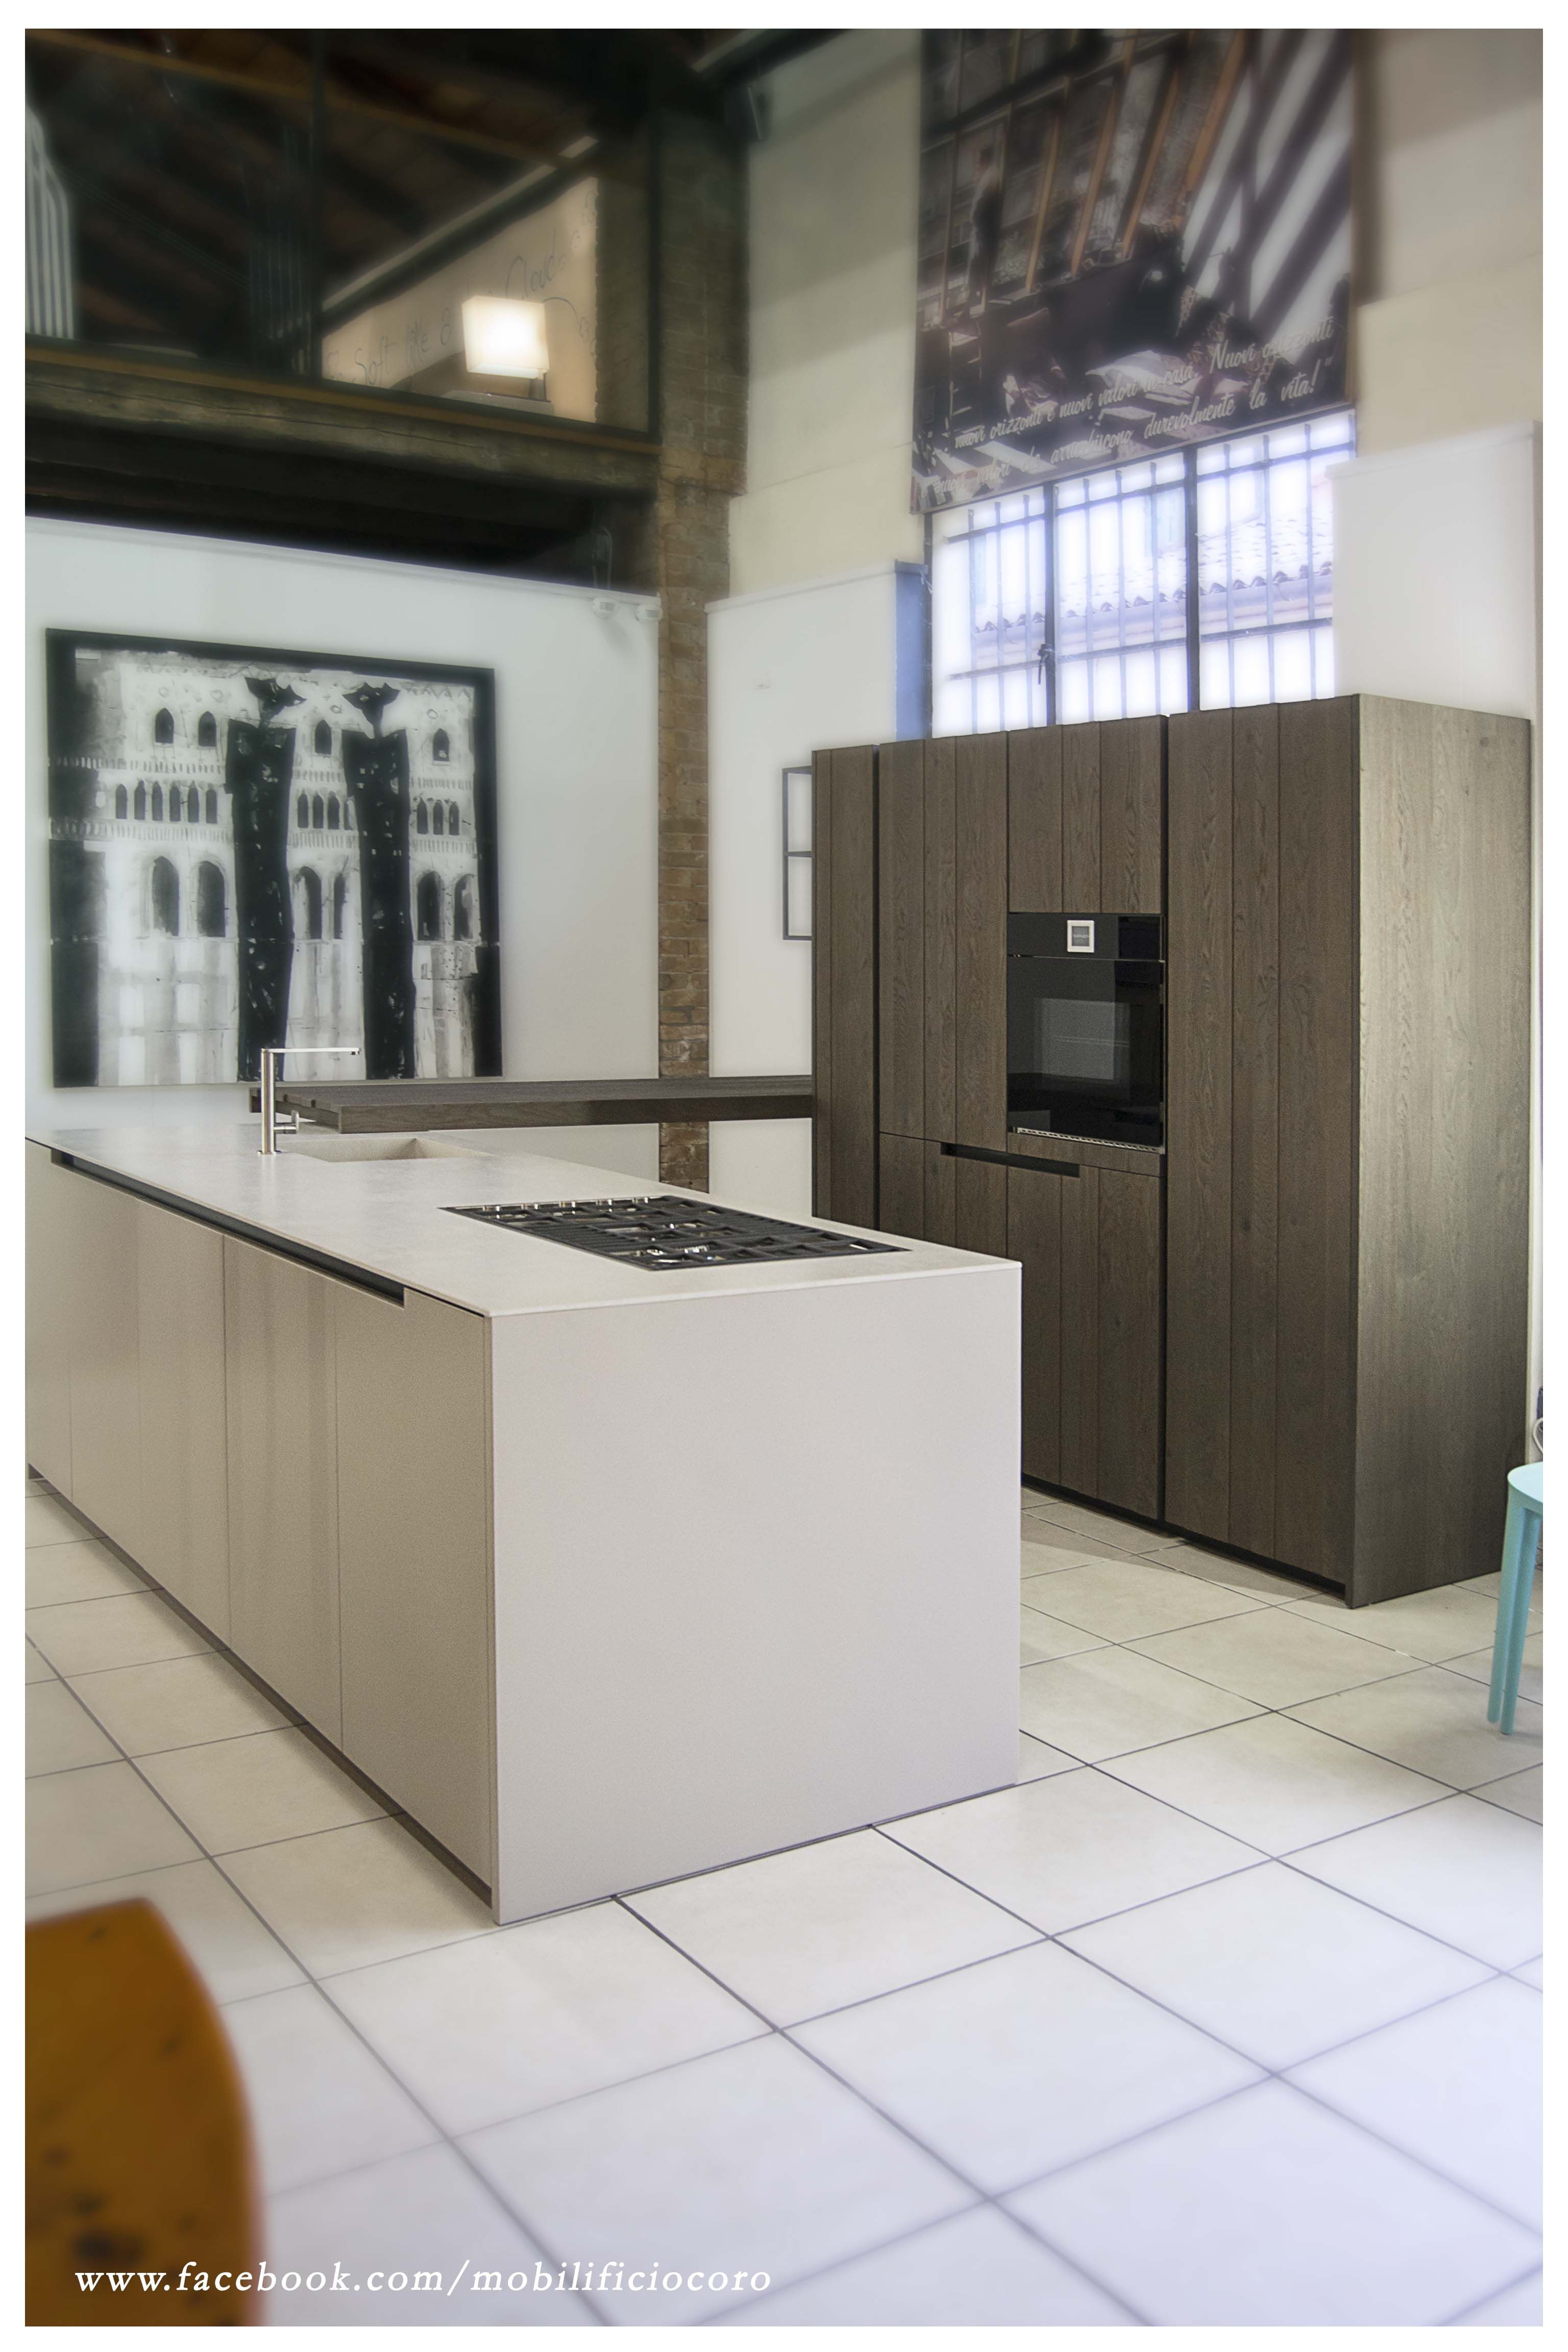 Mobilificio Coro Showroom Zampieri Cucine Shop Coro It Cucine Kitchen Zampieri Homedesign Cucine Case